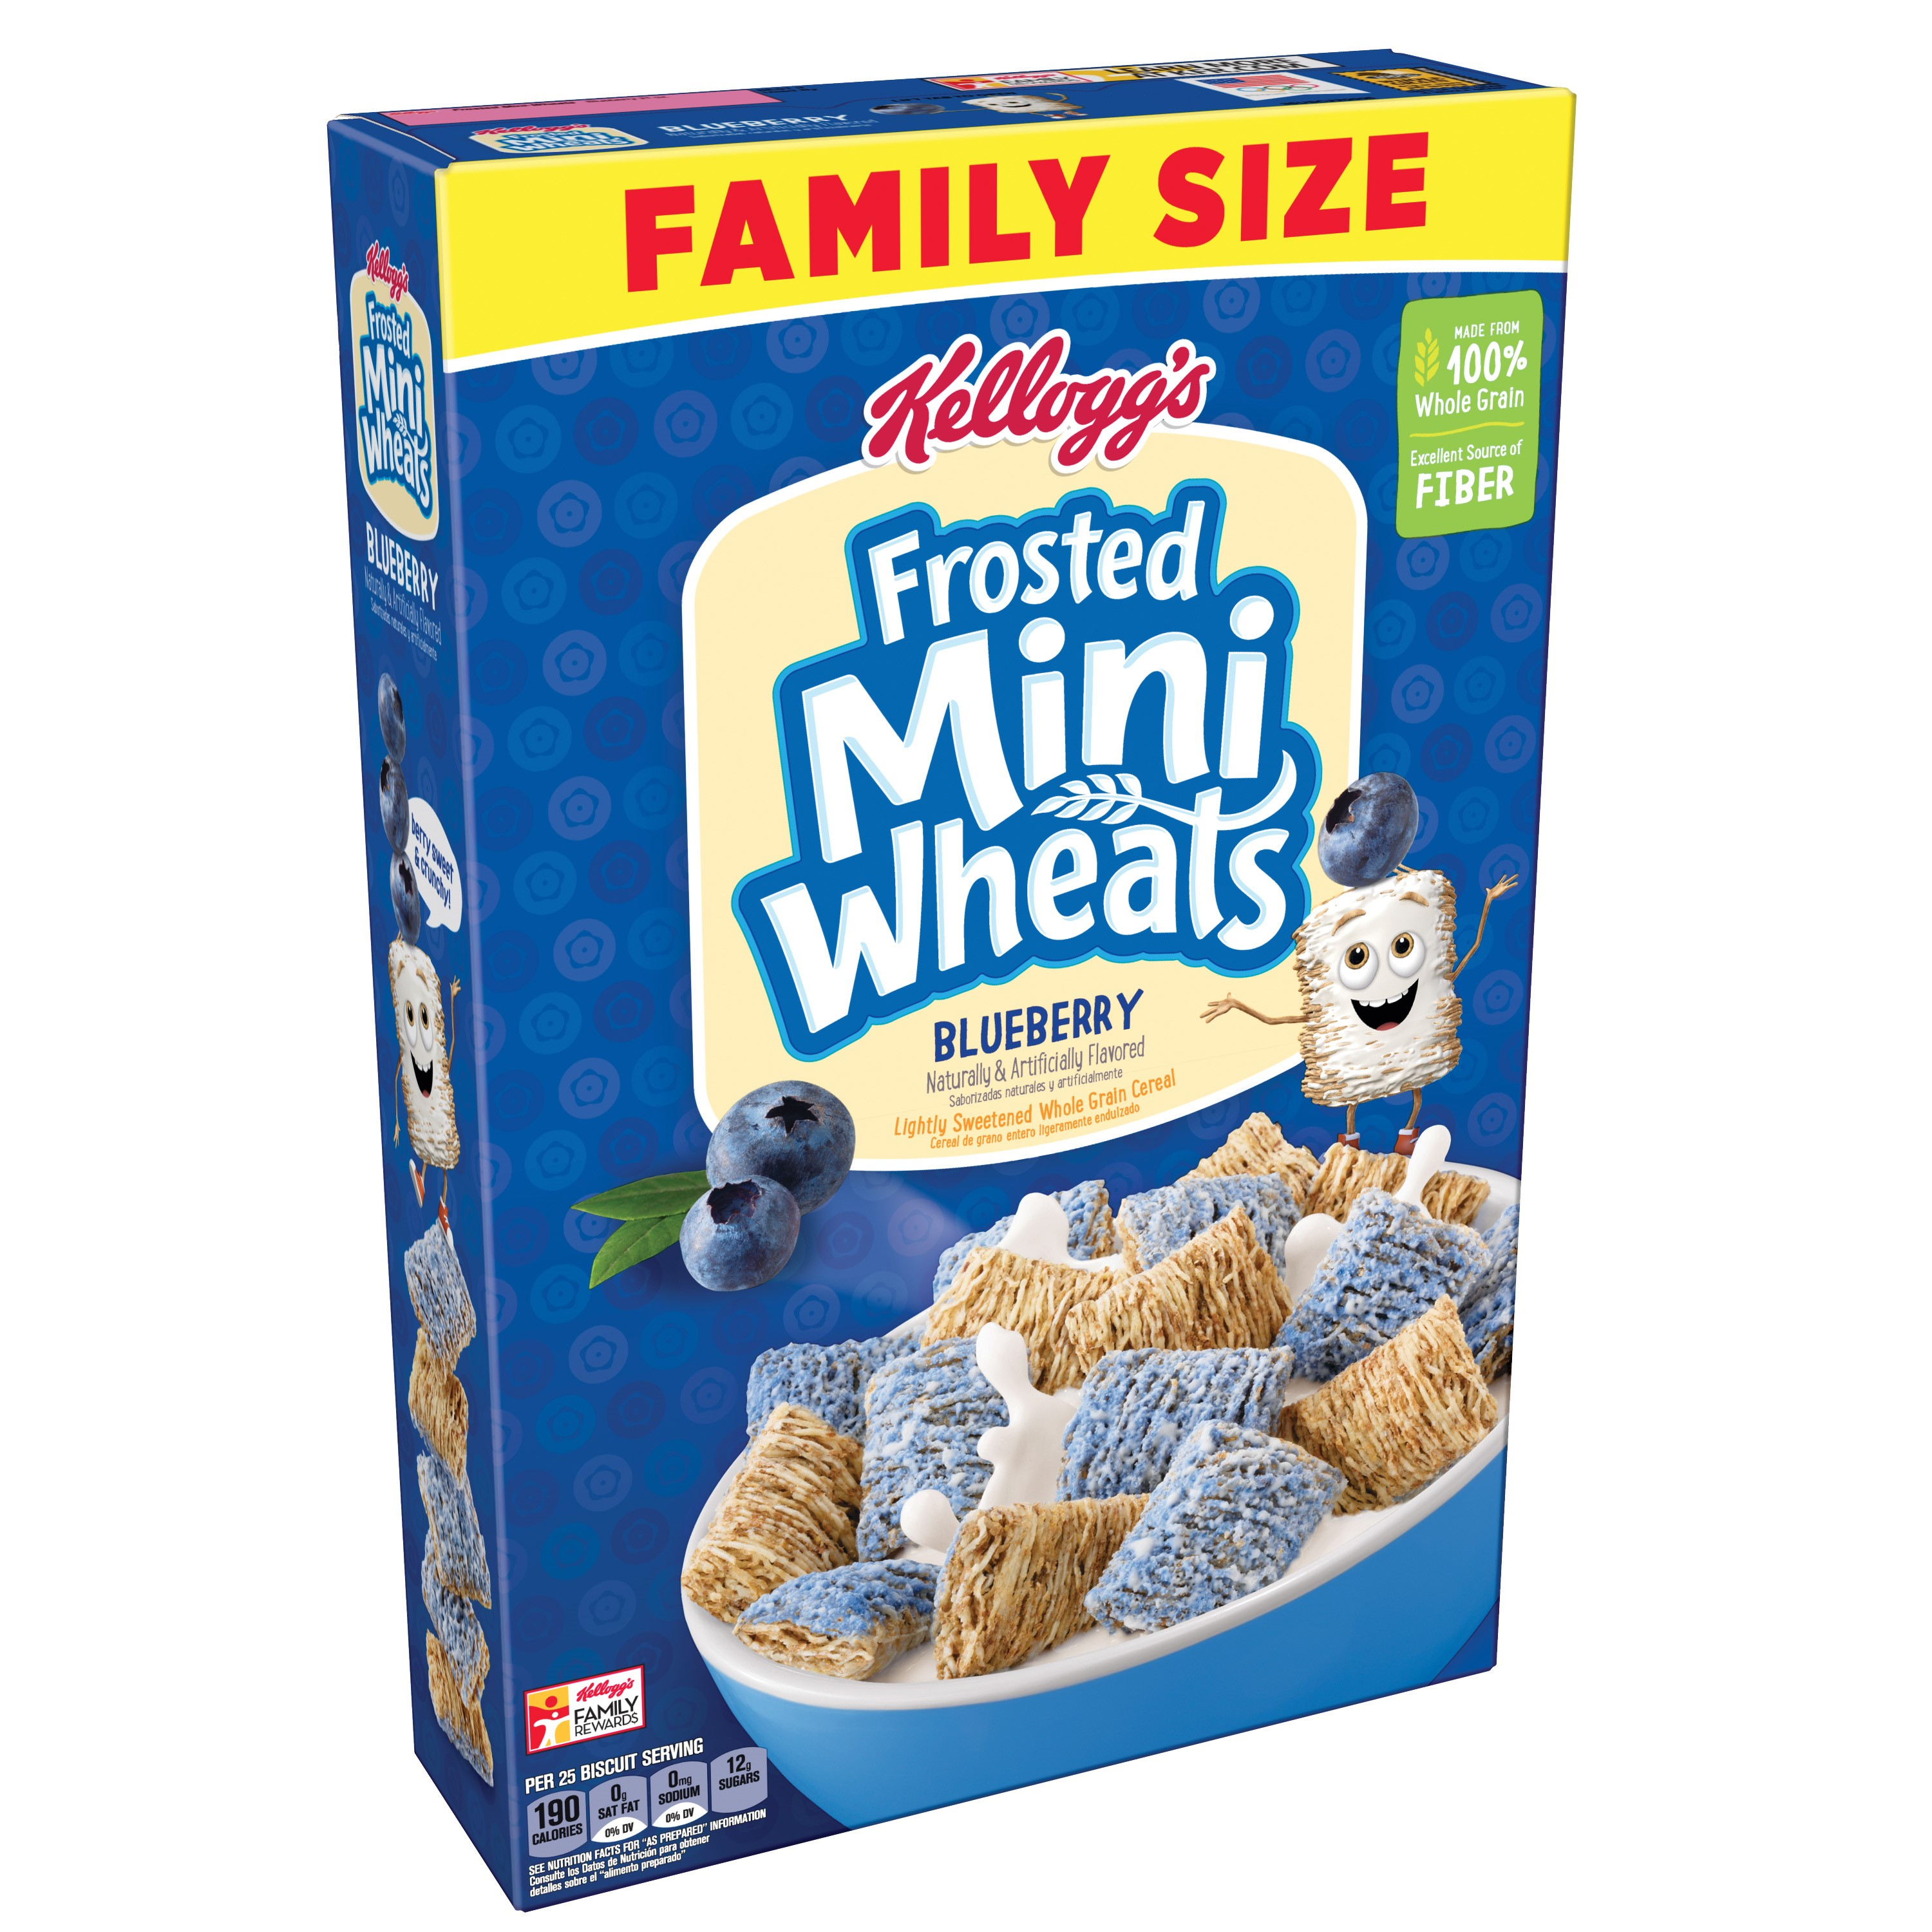 Kellogg's Blueberry Frosted Mini Wheats Breakfast Cereal 21 oz